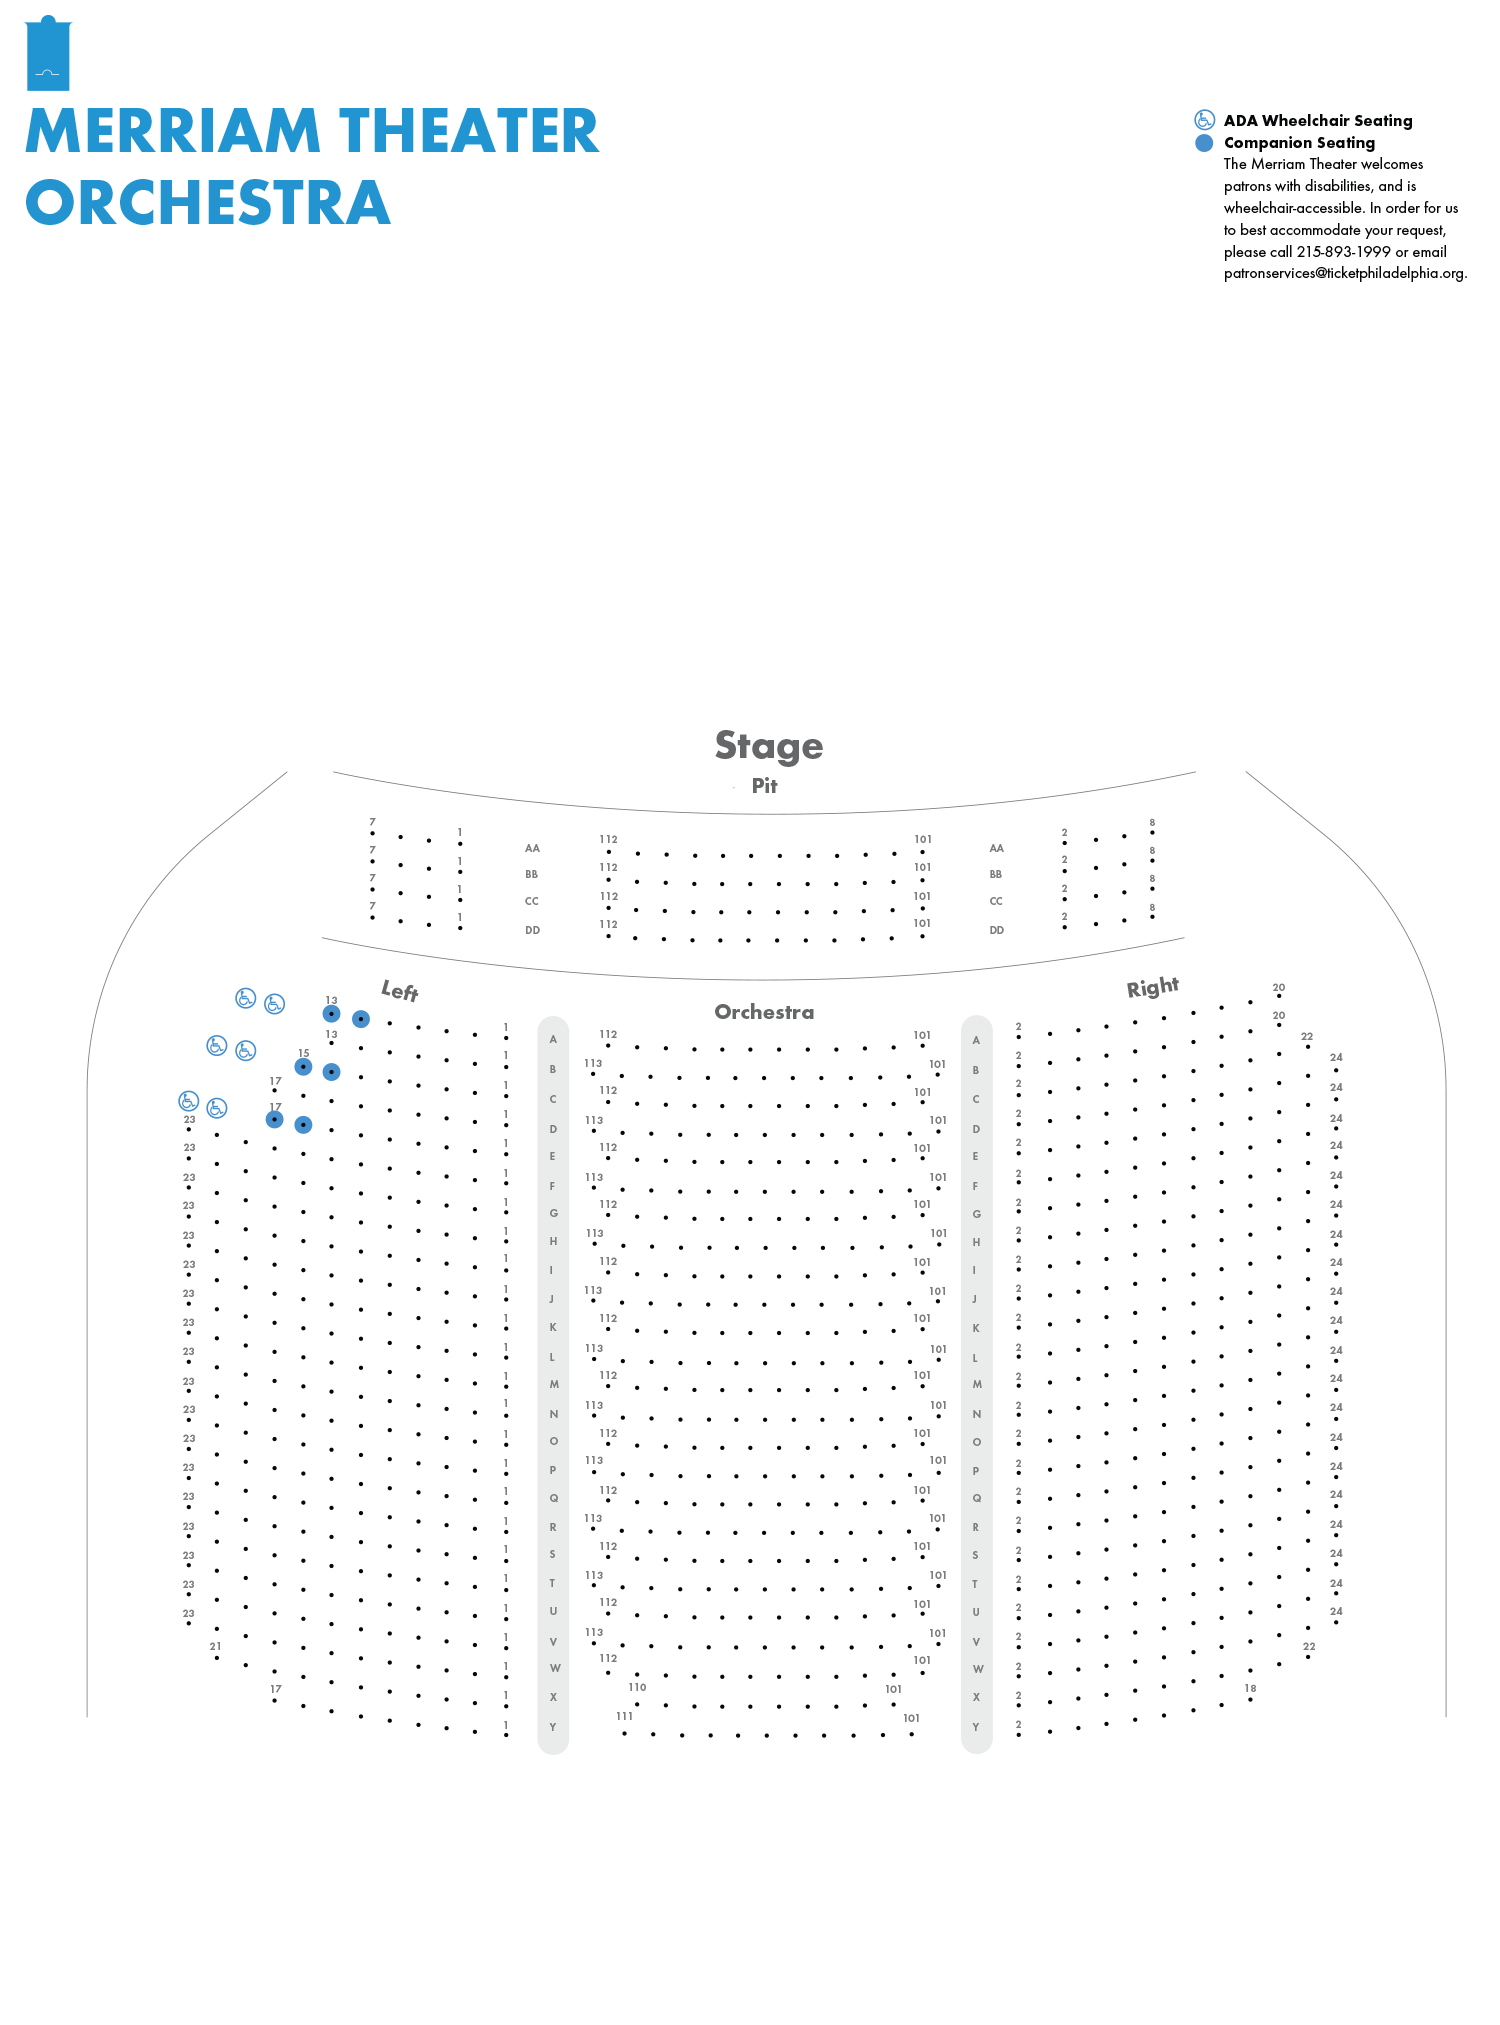 Merriam Theater Orchestra Seating Chart